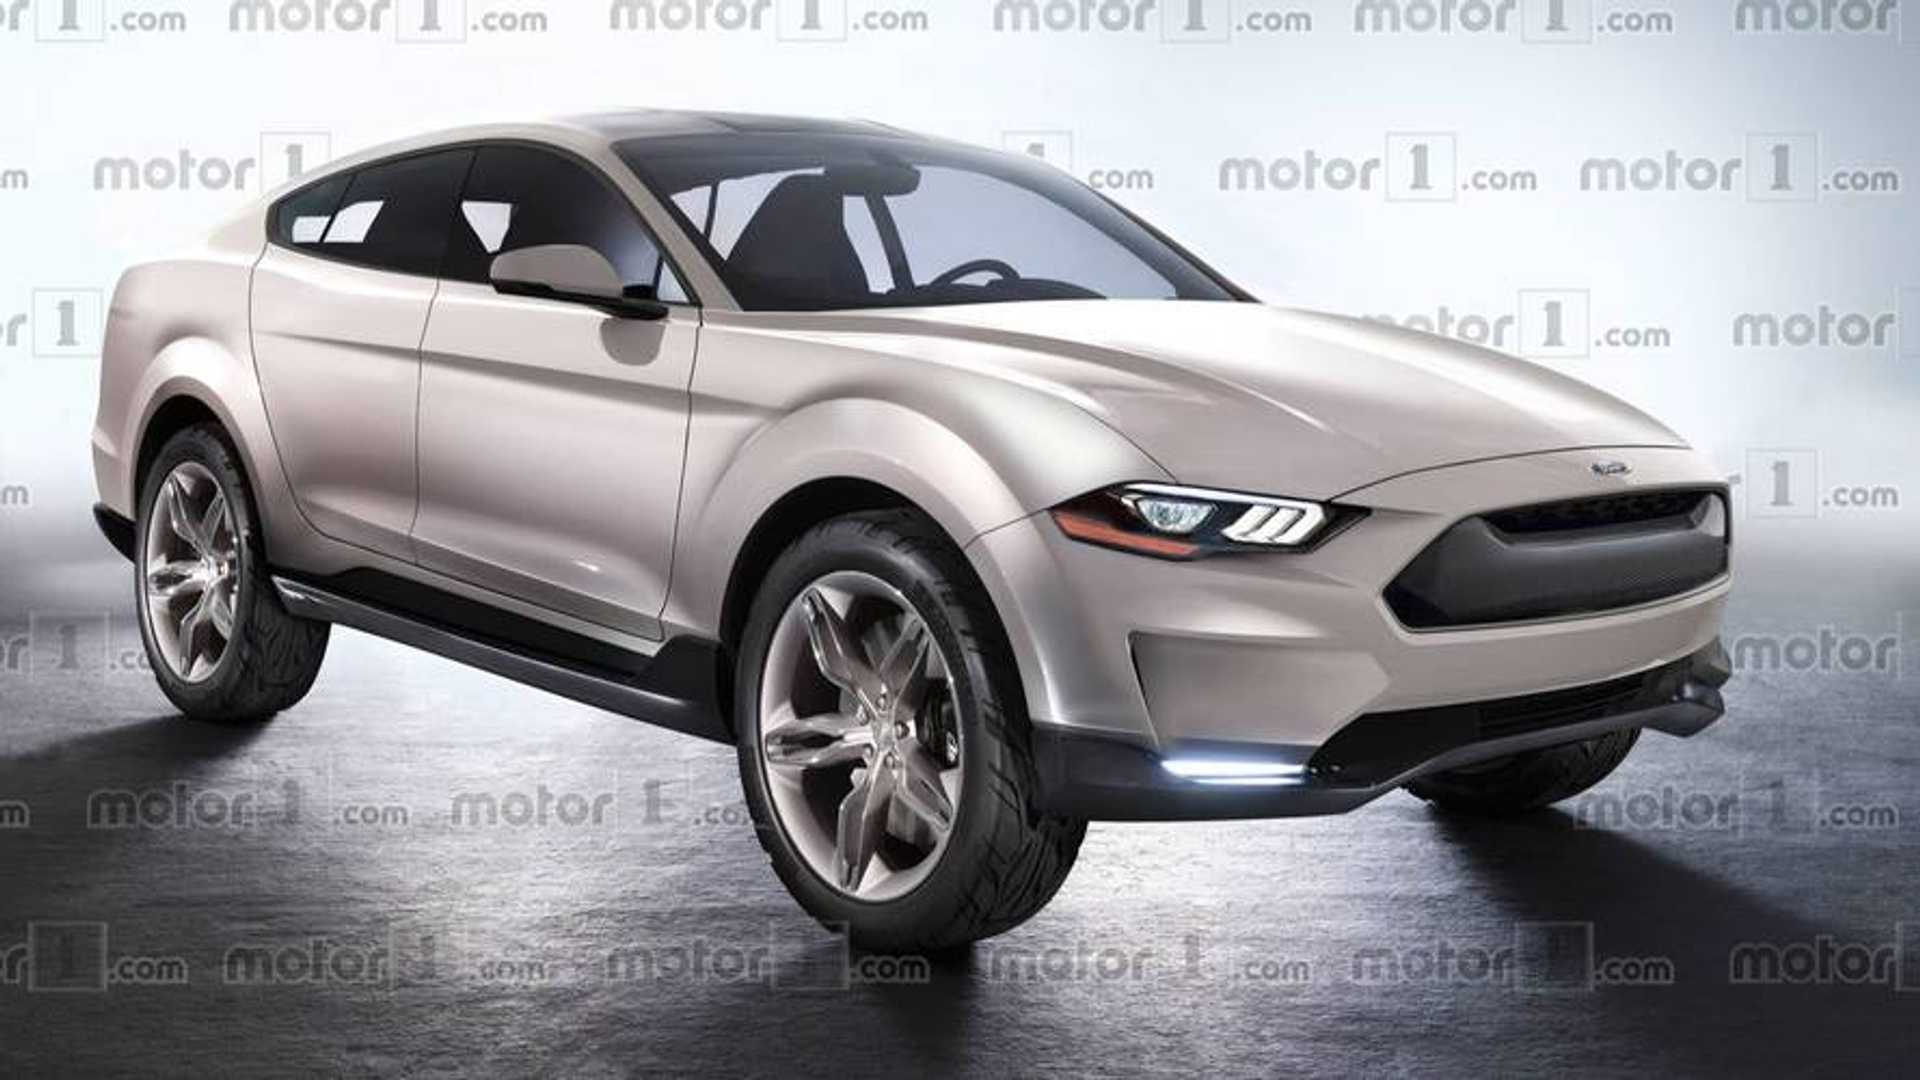 2021 Ford Mach E Is Ford's First Electric SUV >> Ford Trademarks Mach E Likely For Mustang Inspired Electric Cuv